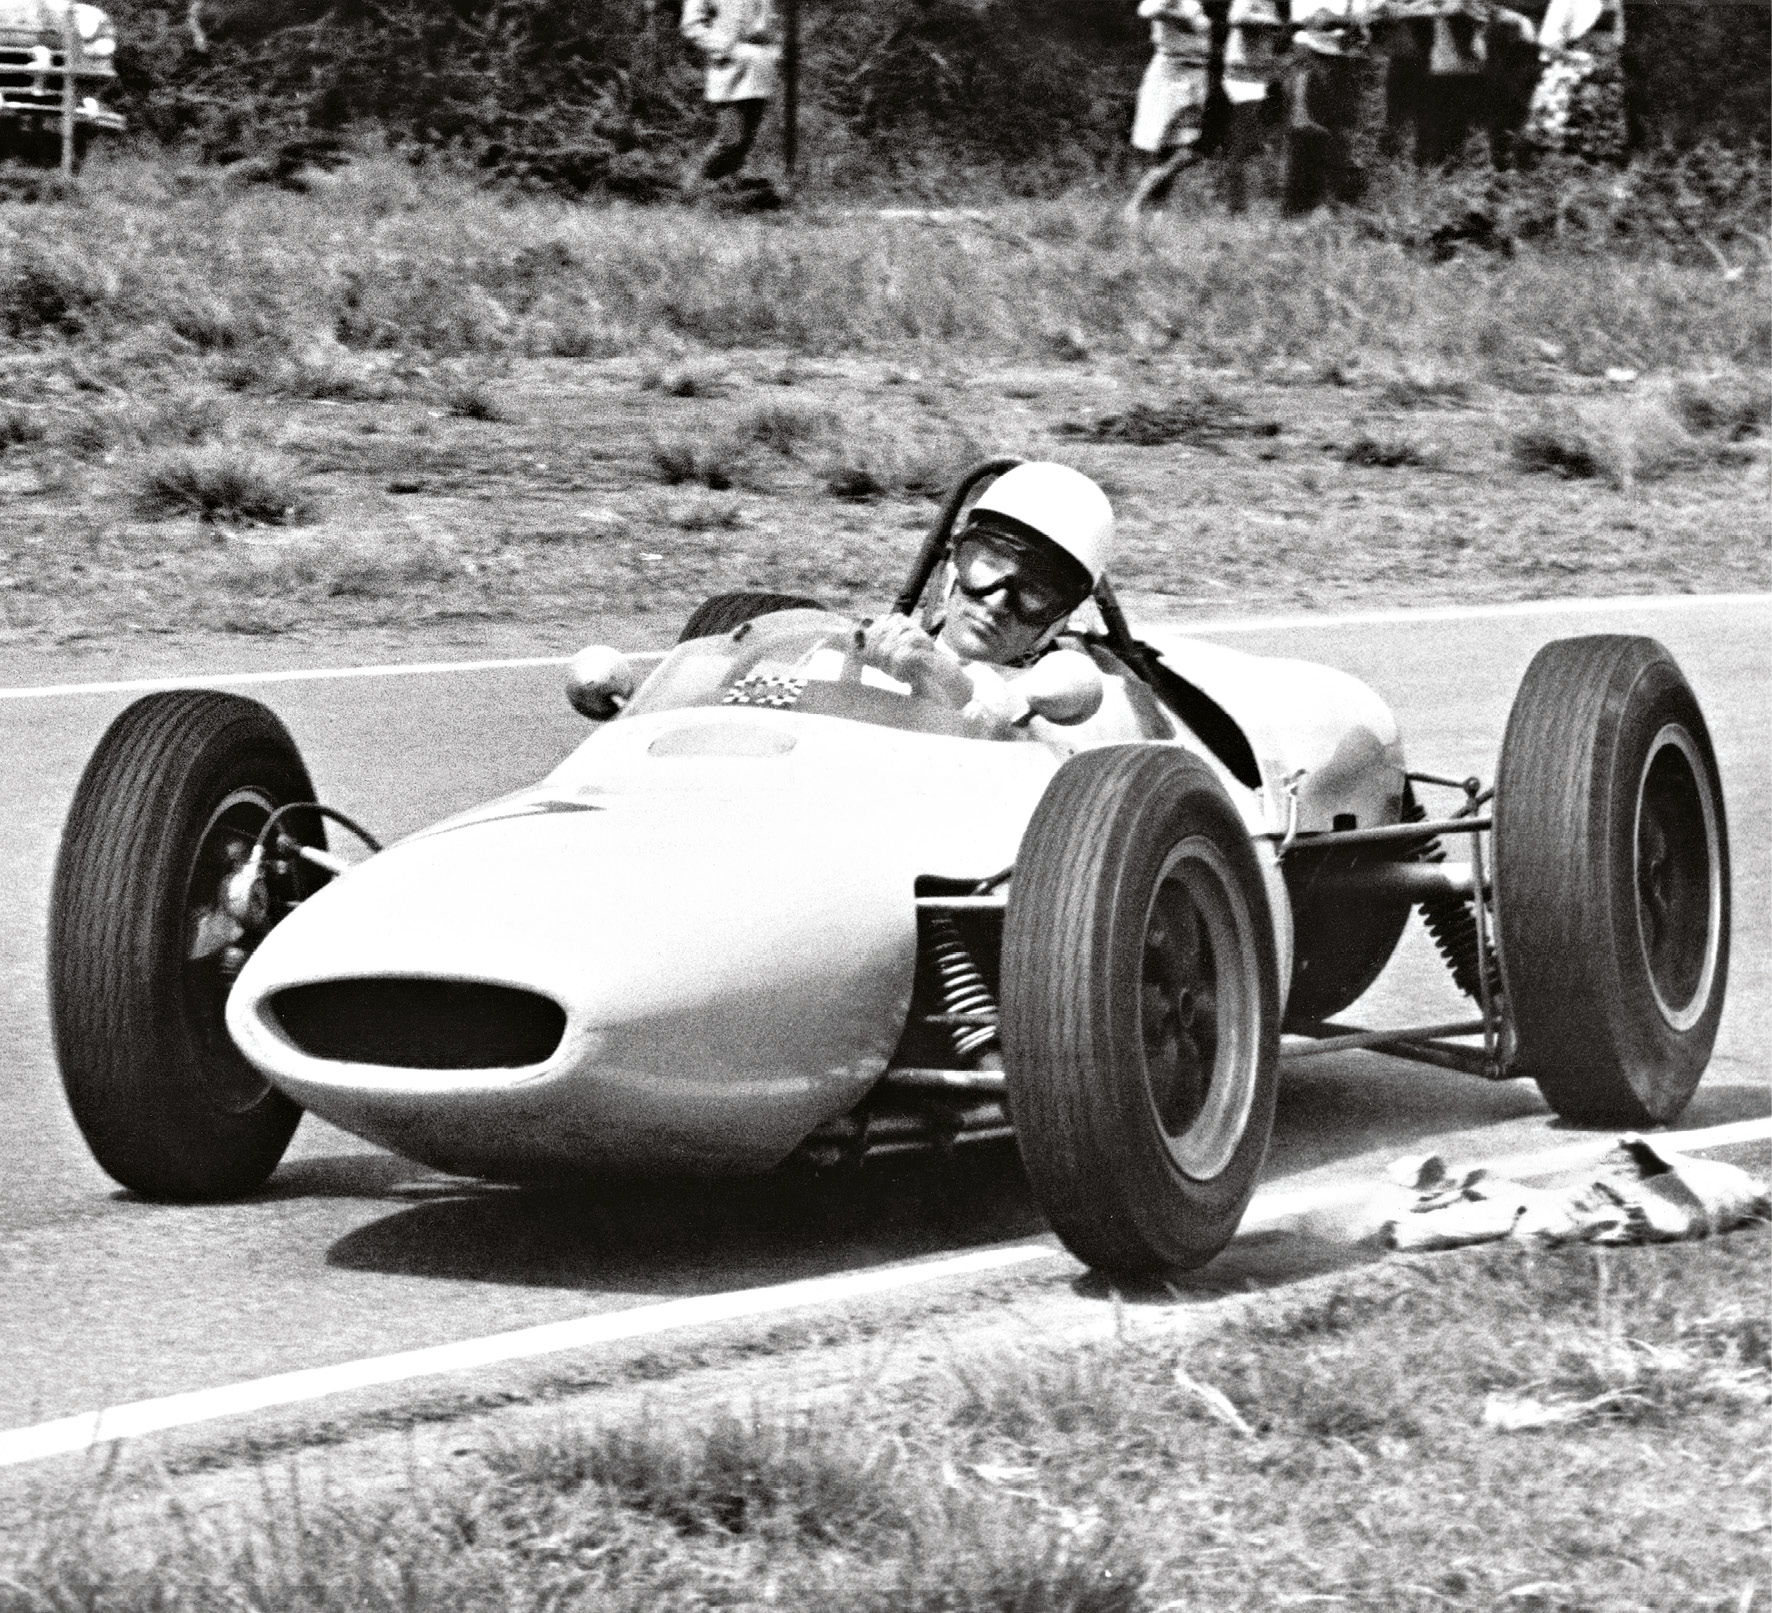 Moss on his way to second place in the 1961 South African GP at Prince George Circuit, East London. Beaten that day by Lotus's Jim Clark, it undoubtedly prompted another late-night debrief over a Chinese...